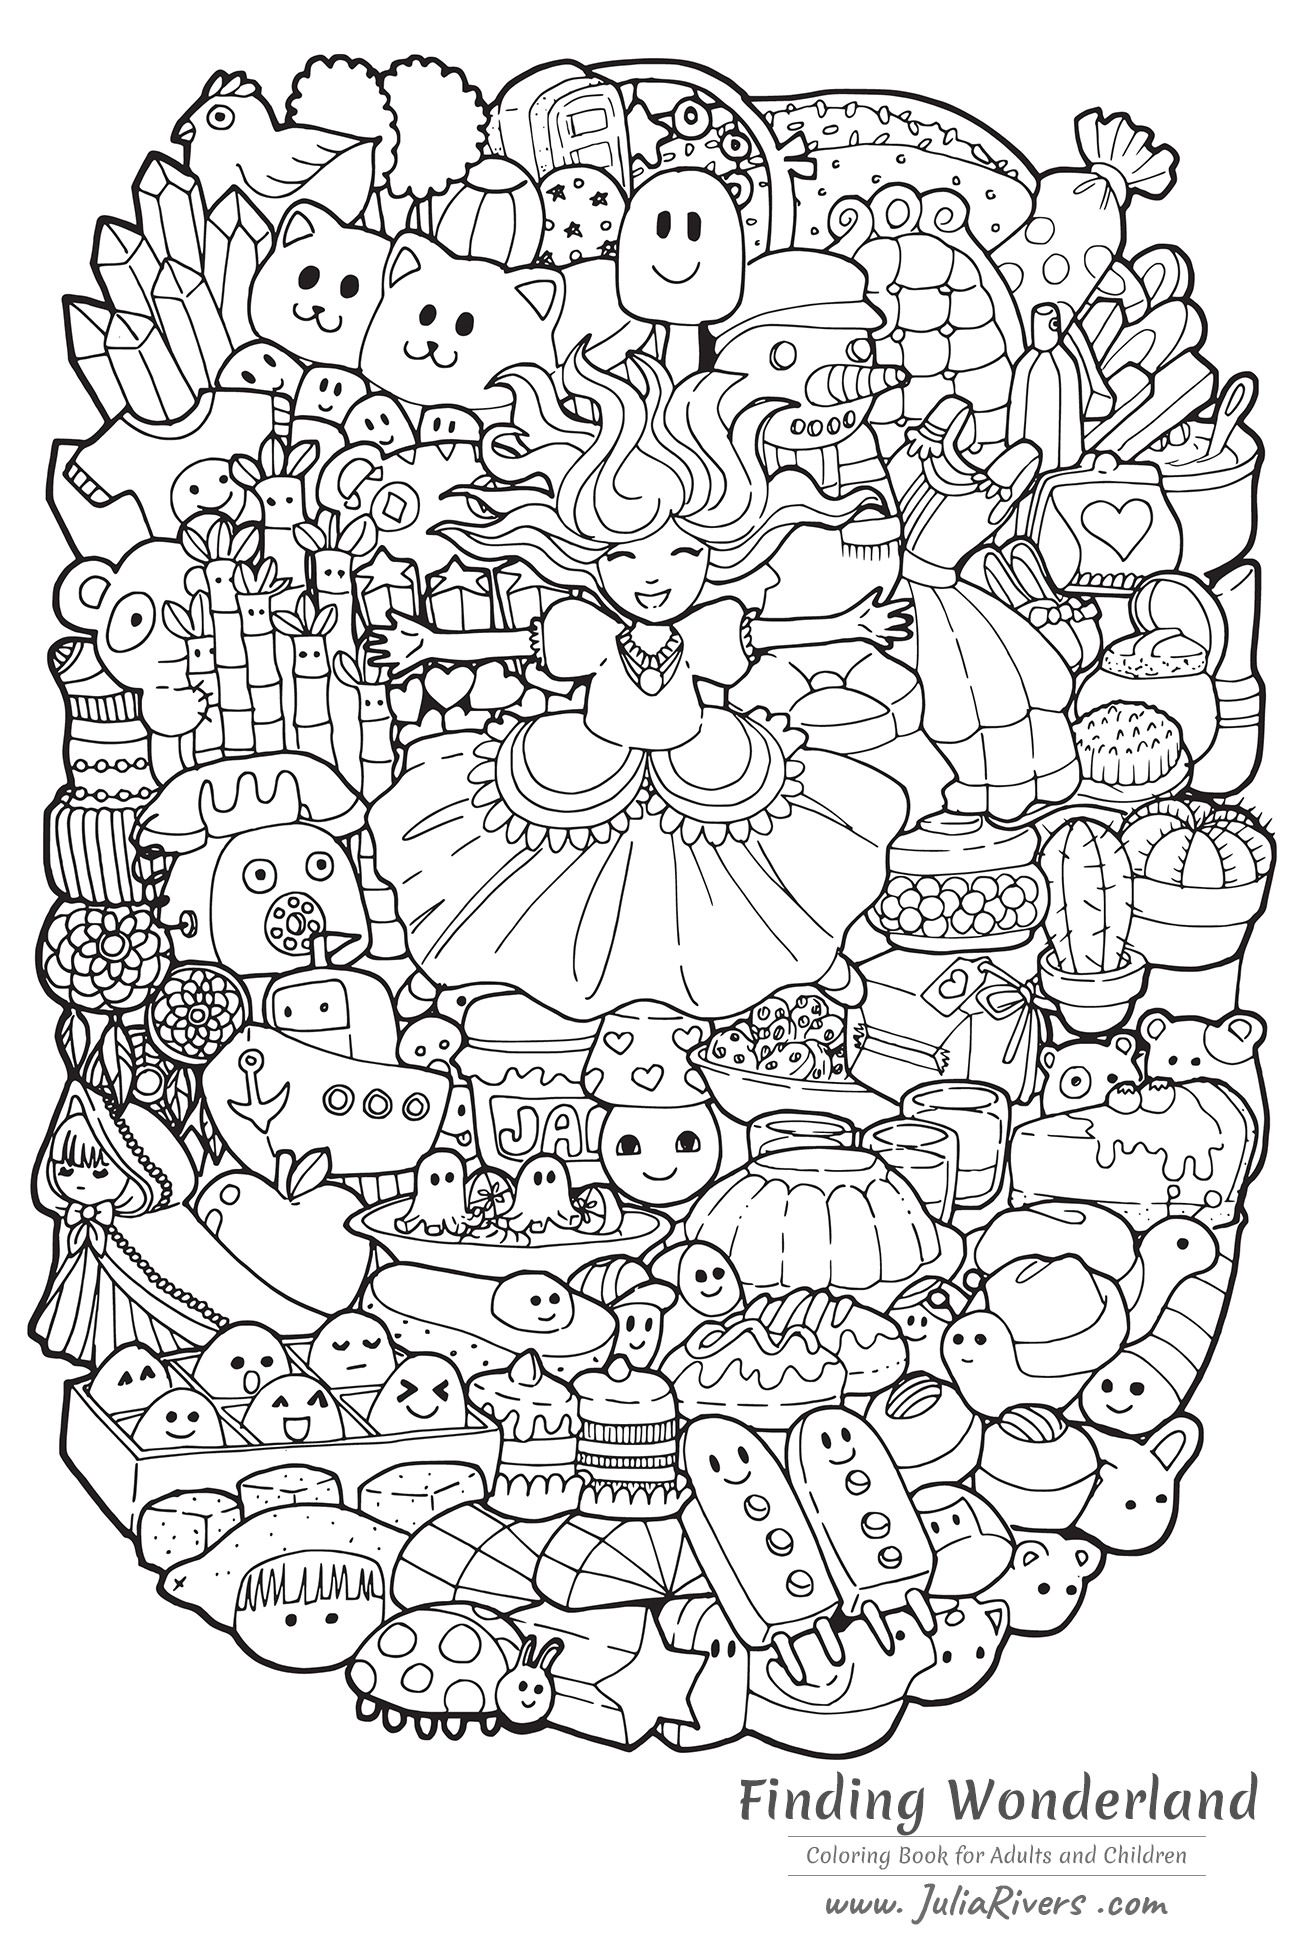 Pin On Free Adult Coloring Book Pages And Color Palettes